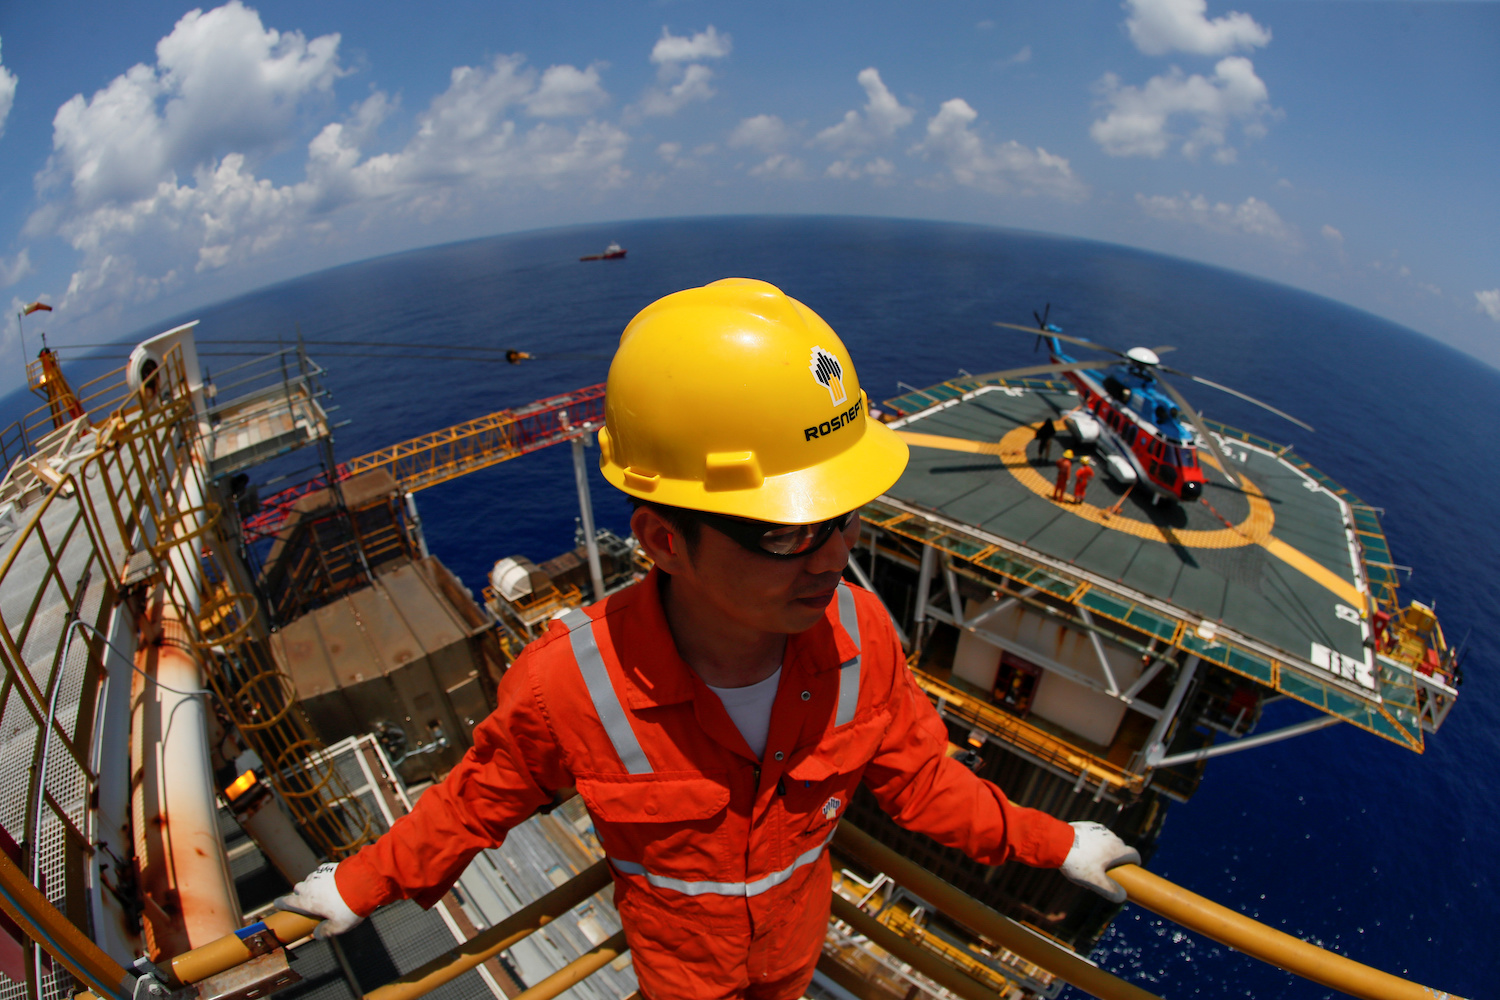 An employee of the exploration firm Rosneft Vietnam looks out from the Lan Tay gas platform in the South China Sea off the coast of Vung Tau. (Reuters Photo)